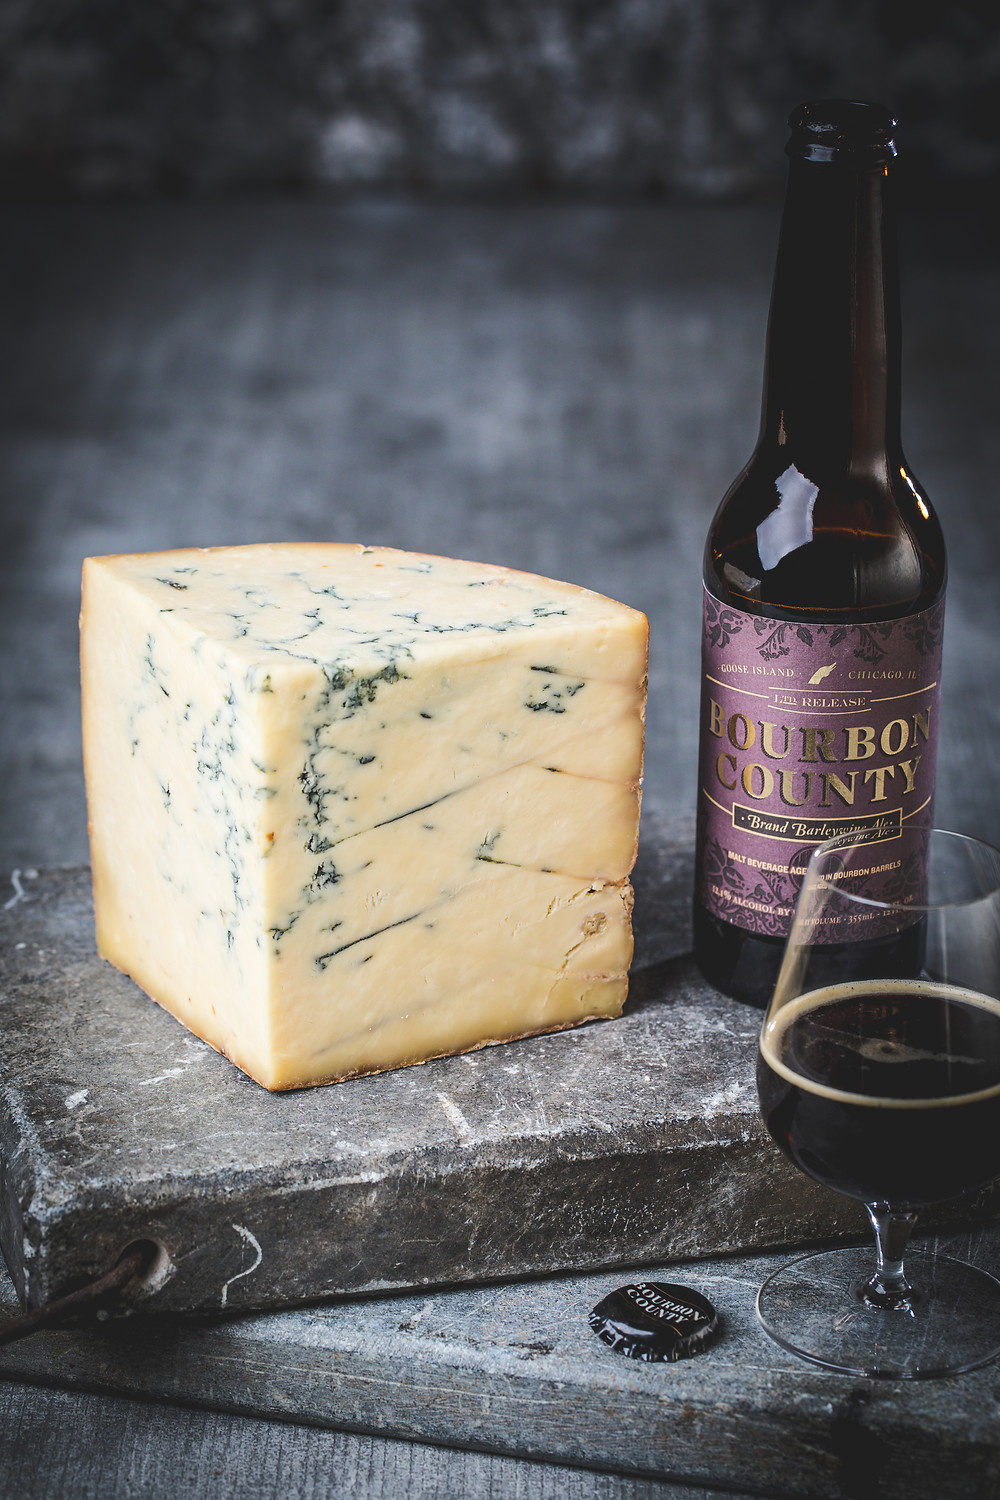 A classy cheese and beer pairing of Goose Island Bourbon County Stout